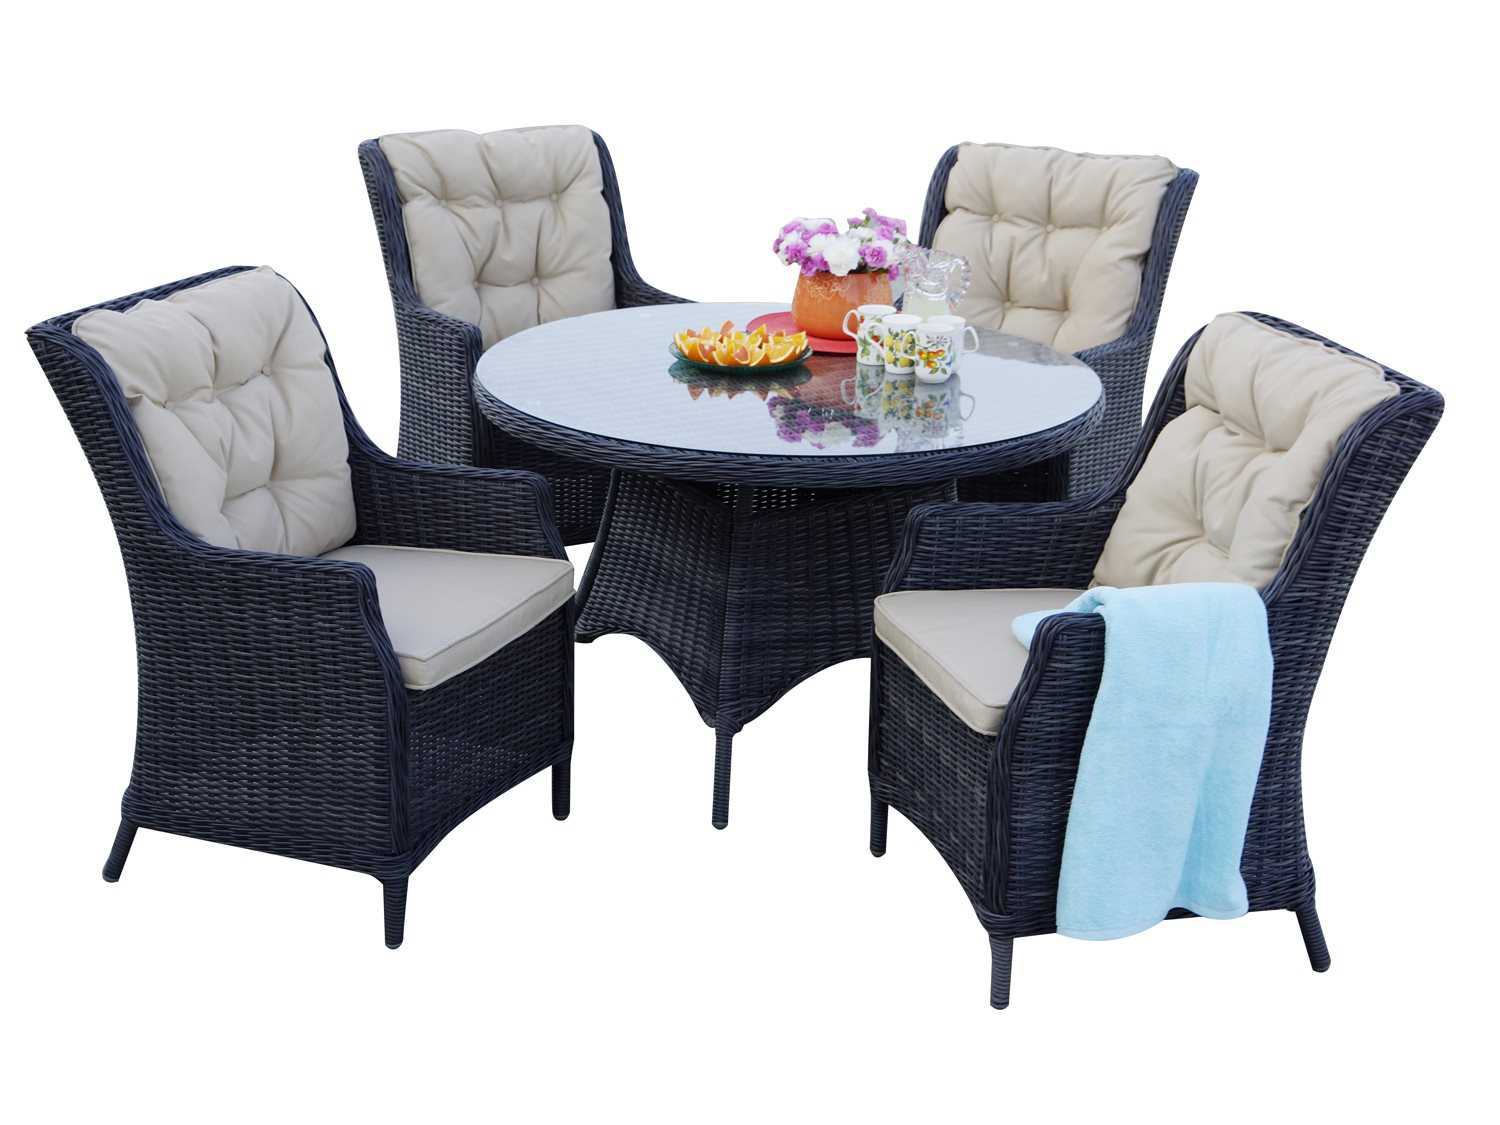 Darlee Outdoor Living Valencia 48'' Round Dining Table